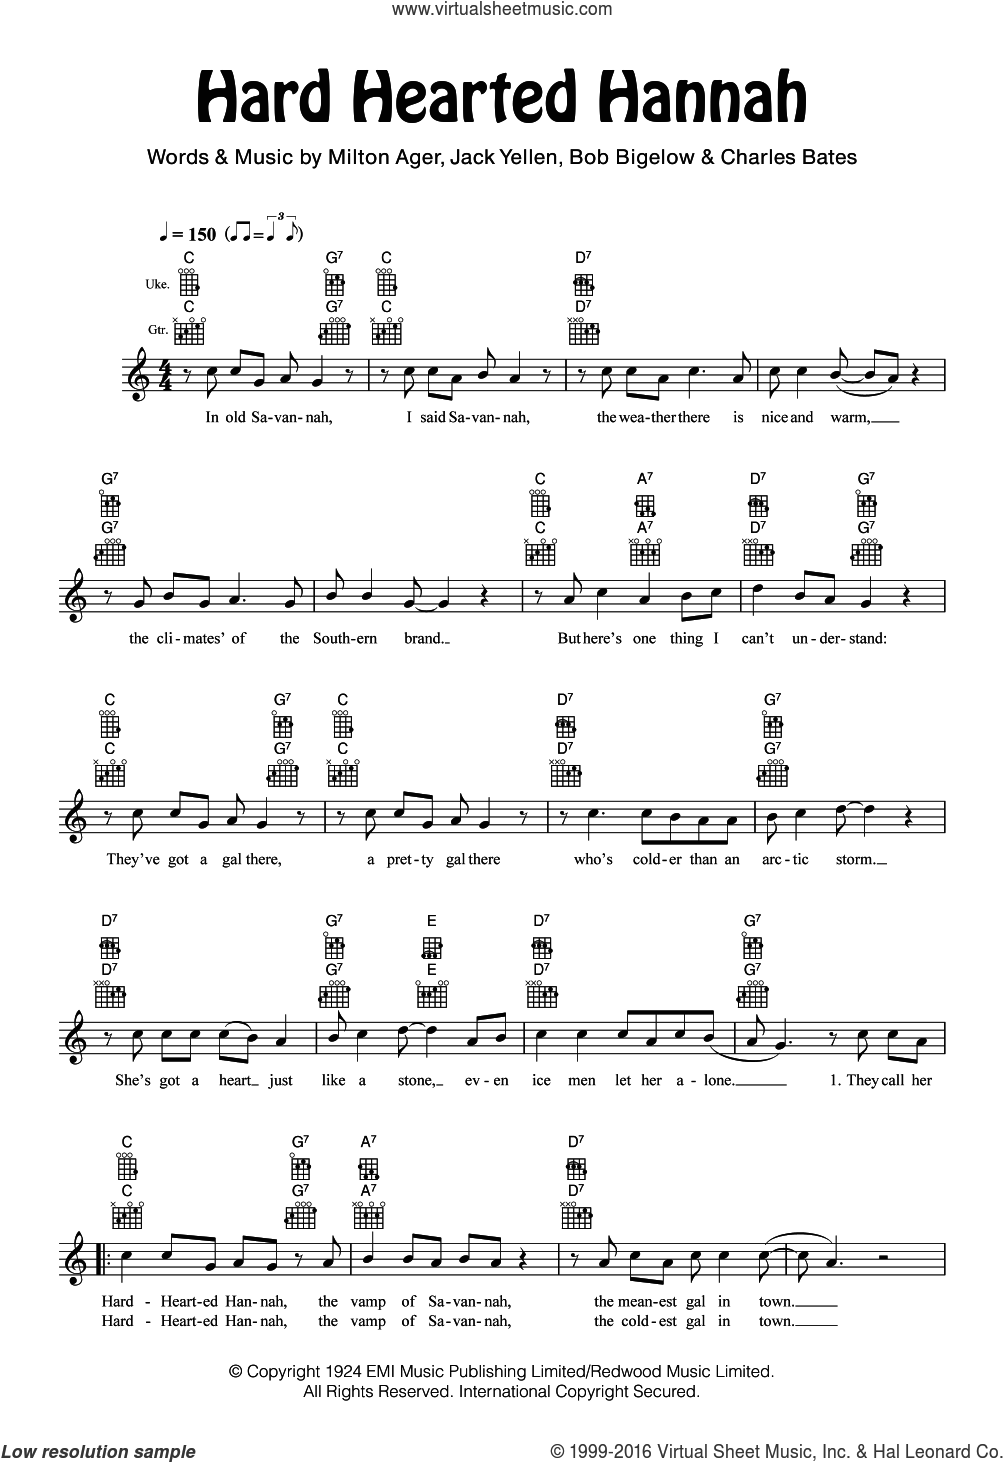 Hard Hearted Hannah sheet music for ukulele by Cliff Edwards, Bob Bigelow, Charles Bates, Jack Yellen and Milton Ager, intermediate skill level